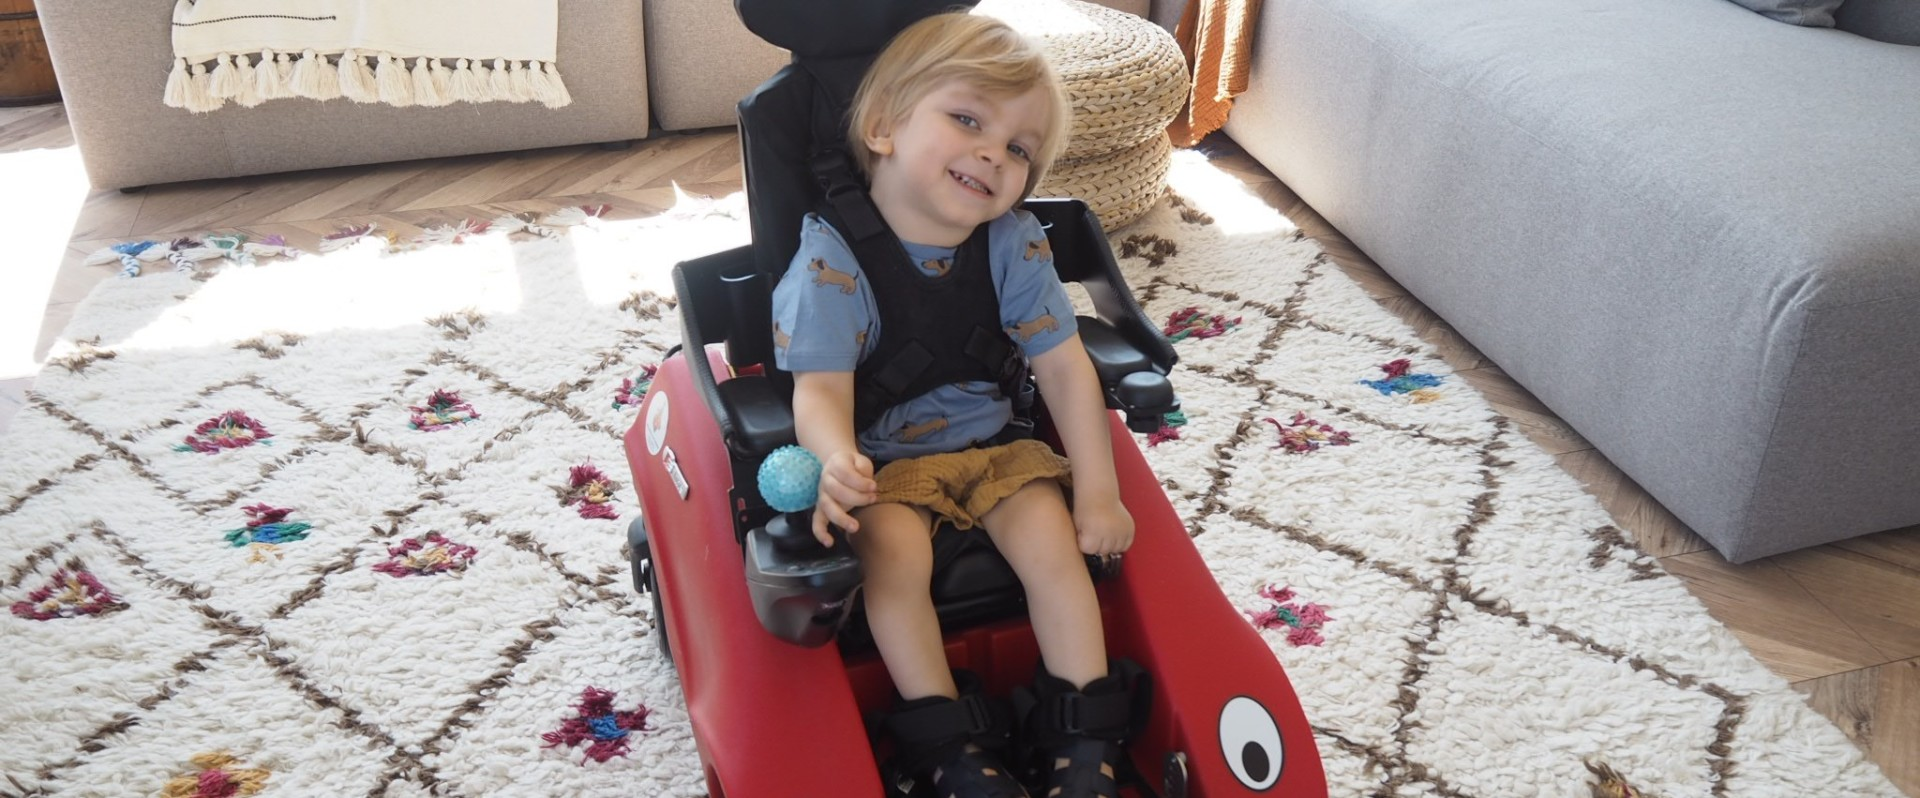 Young boy smiling in Wizzybug powered wheelchair in a living room